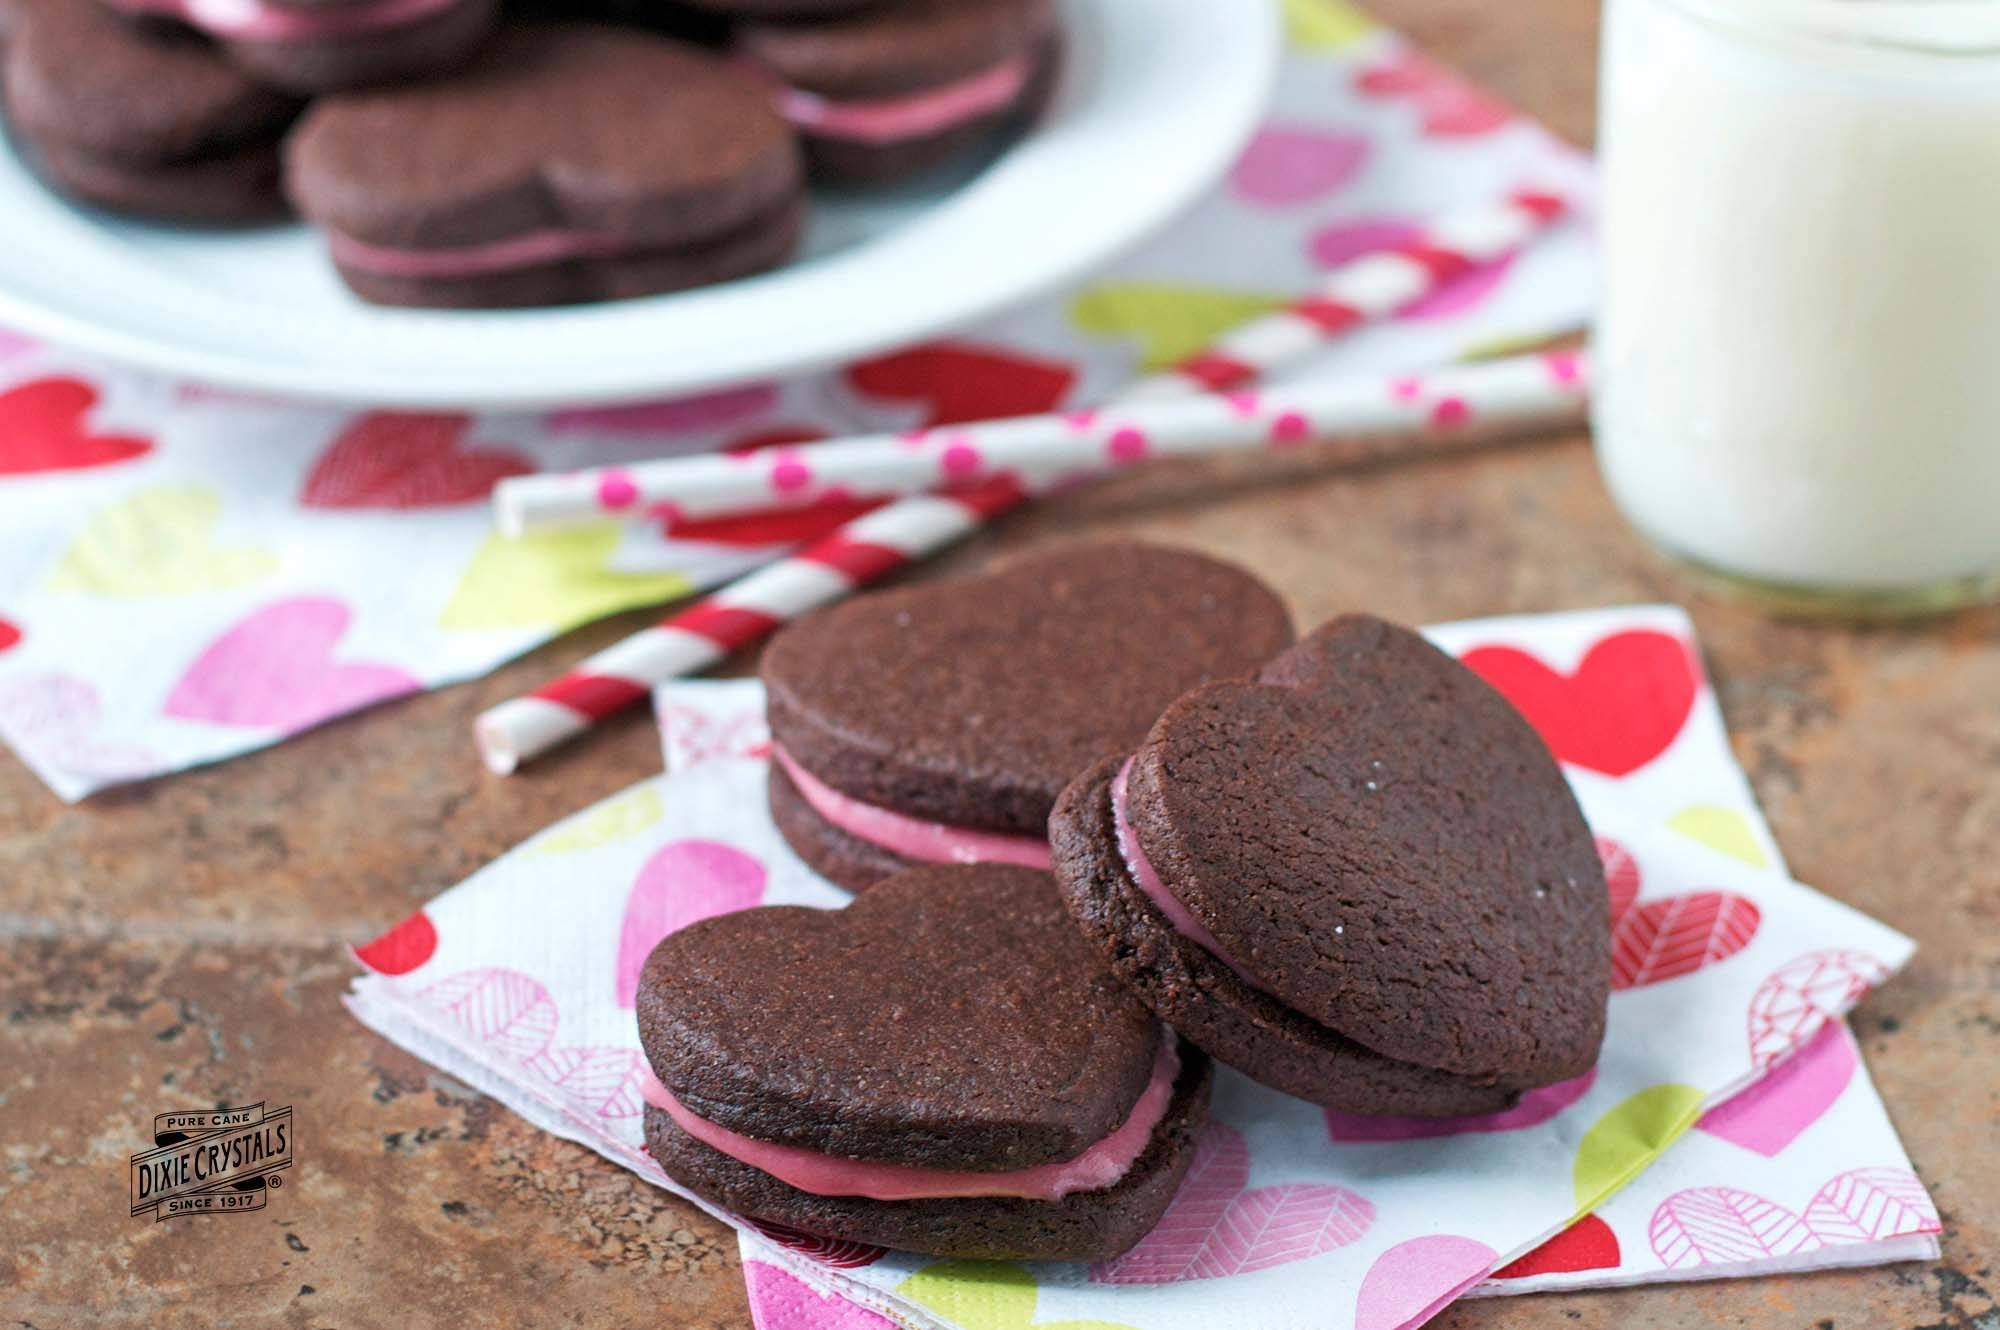 Chocolate-Raspberry-Heart-Cookies-dixie.jpg